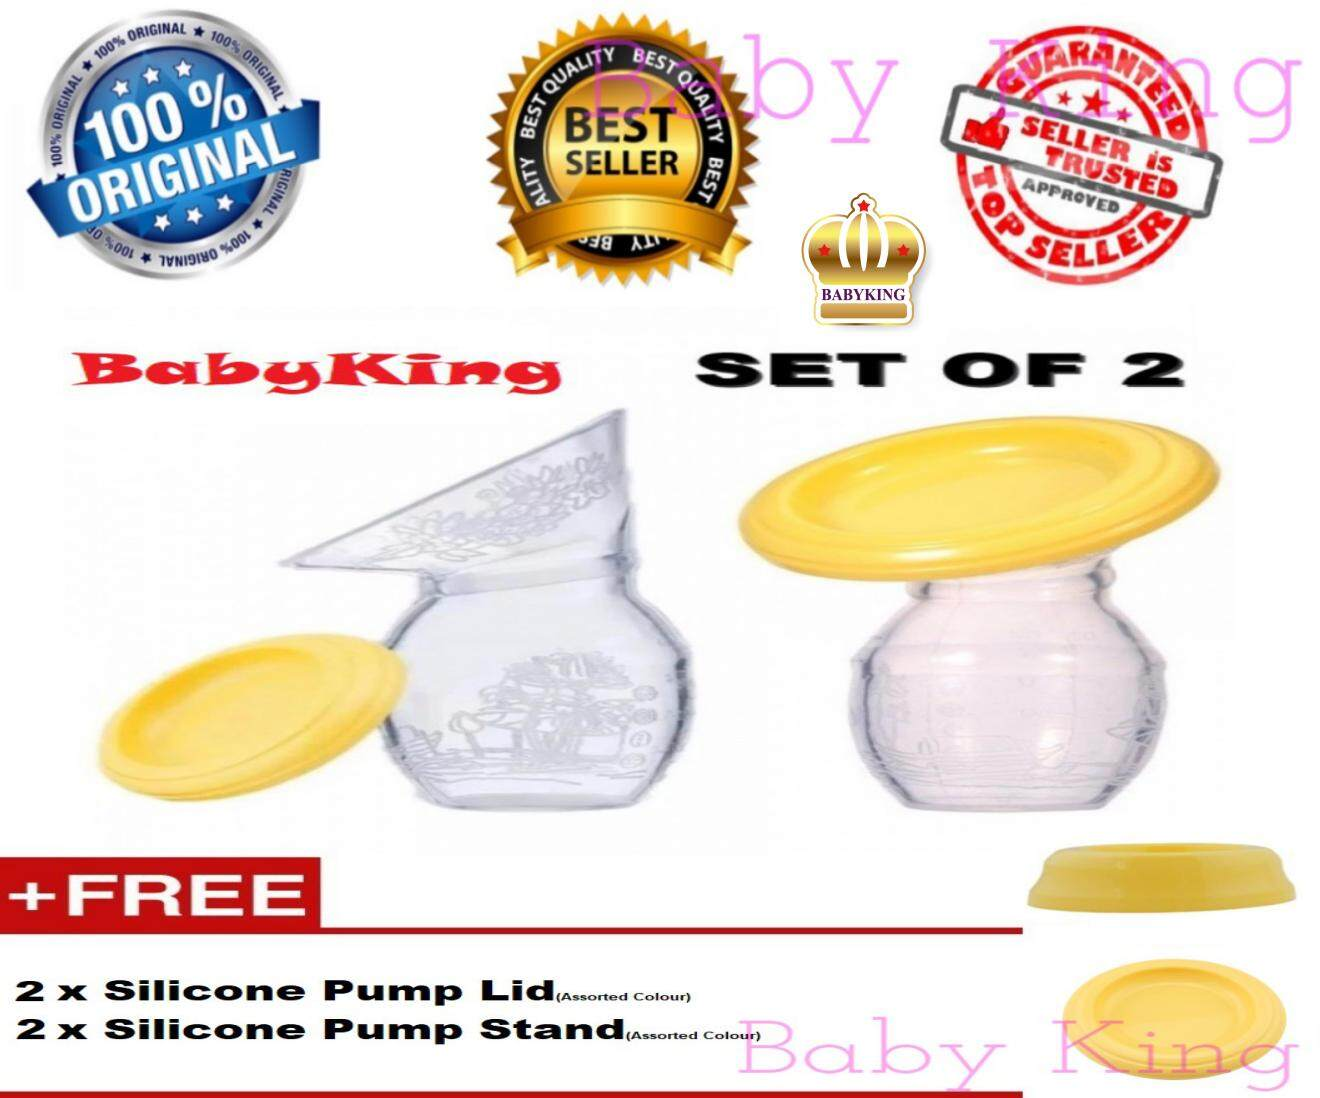 [flash Sale Clearance] Babyking 2 Pcs Bpa-Free Silicone Portable Manual Breast Pump Breast Milk Collector With Lids And Stands By Baby King.